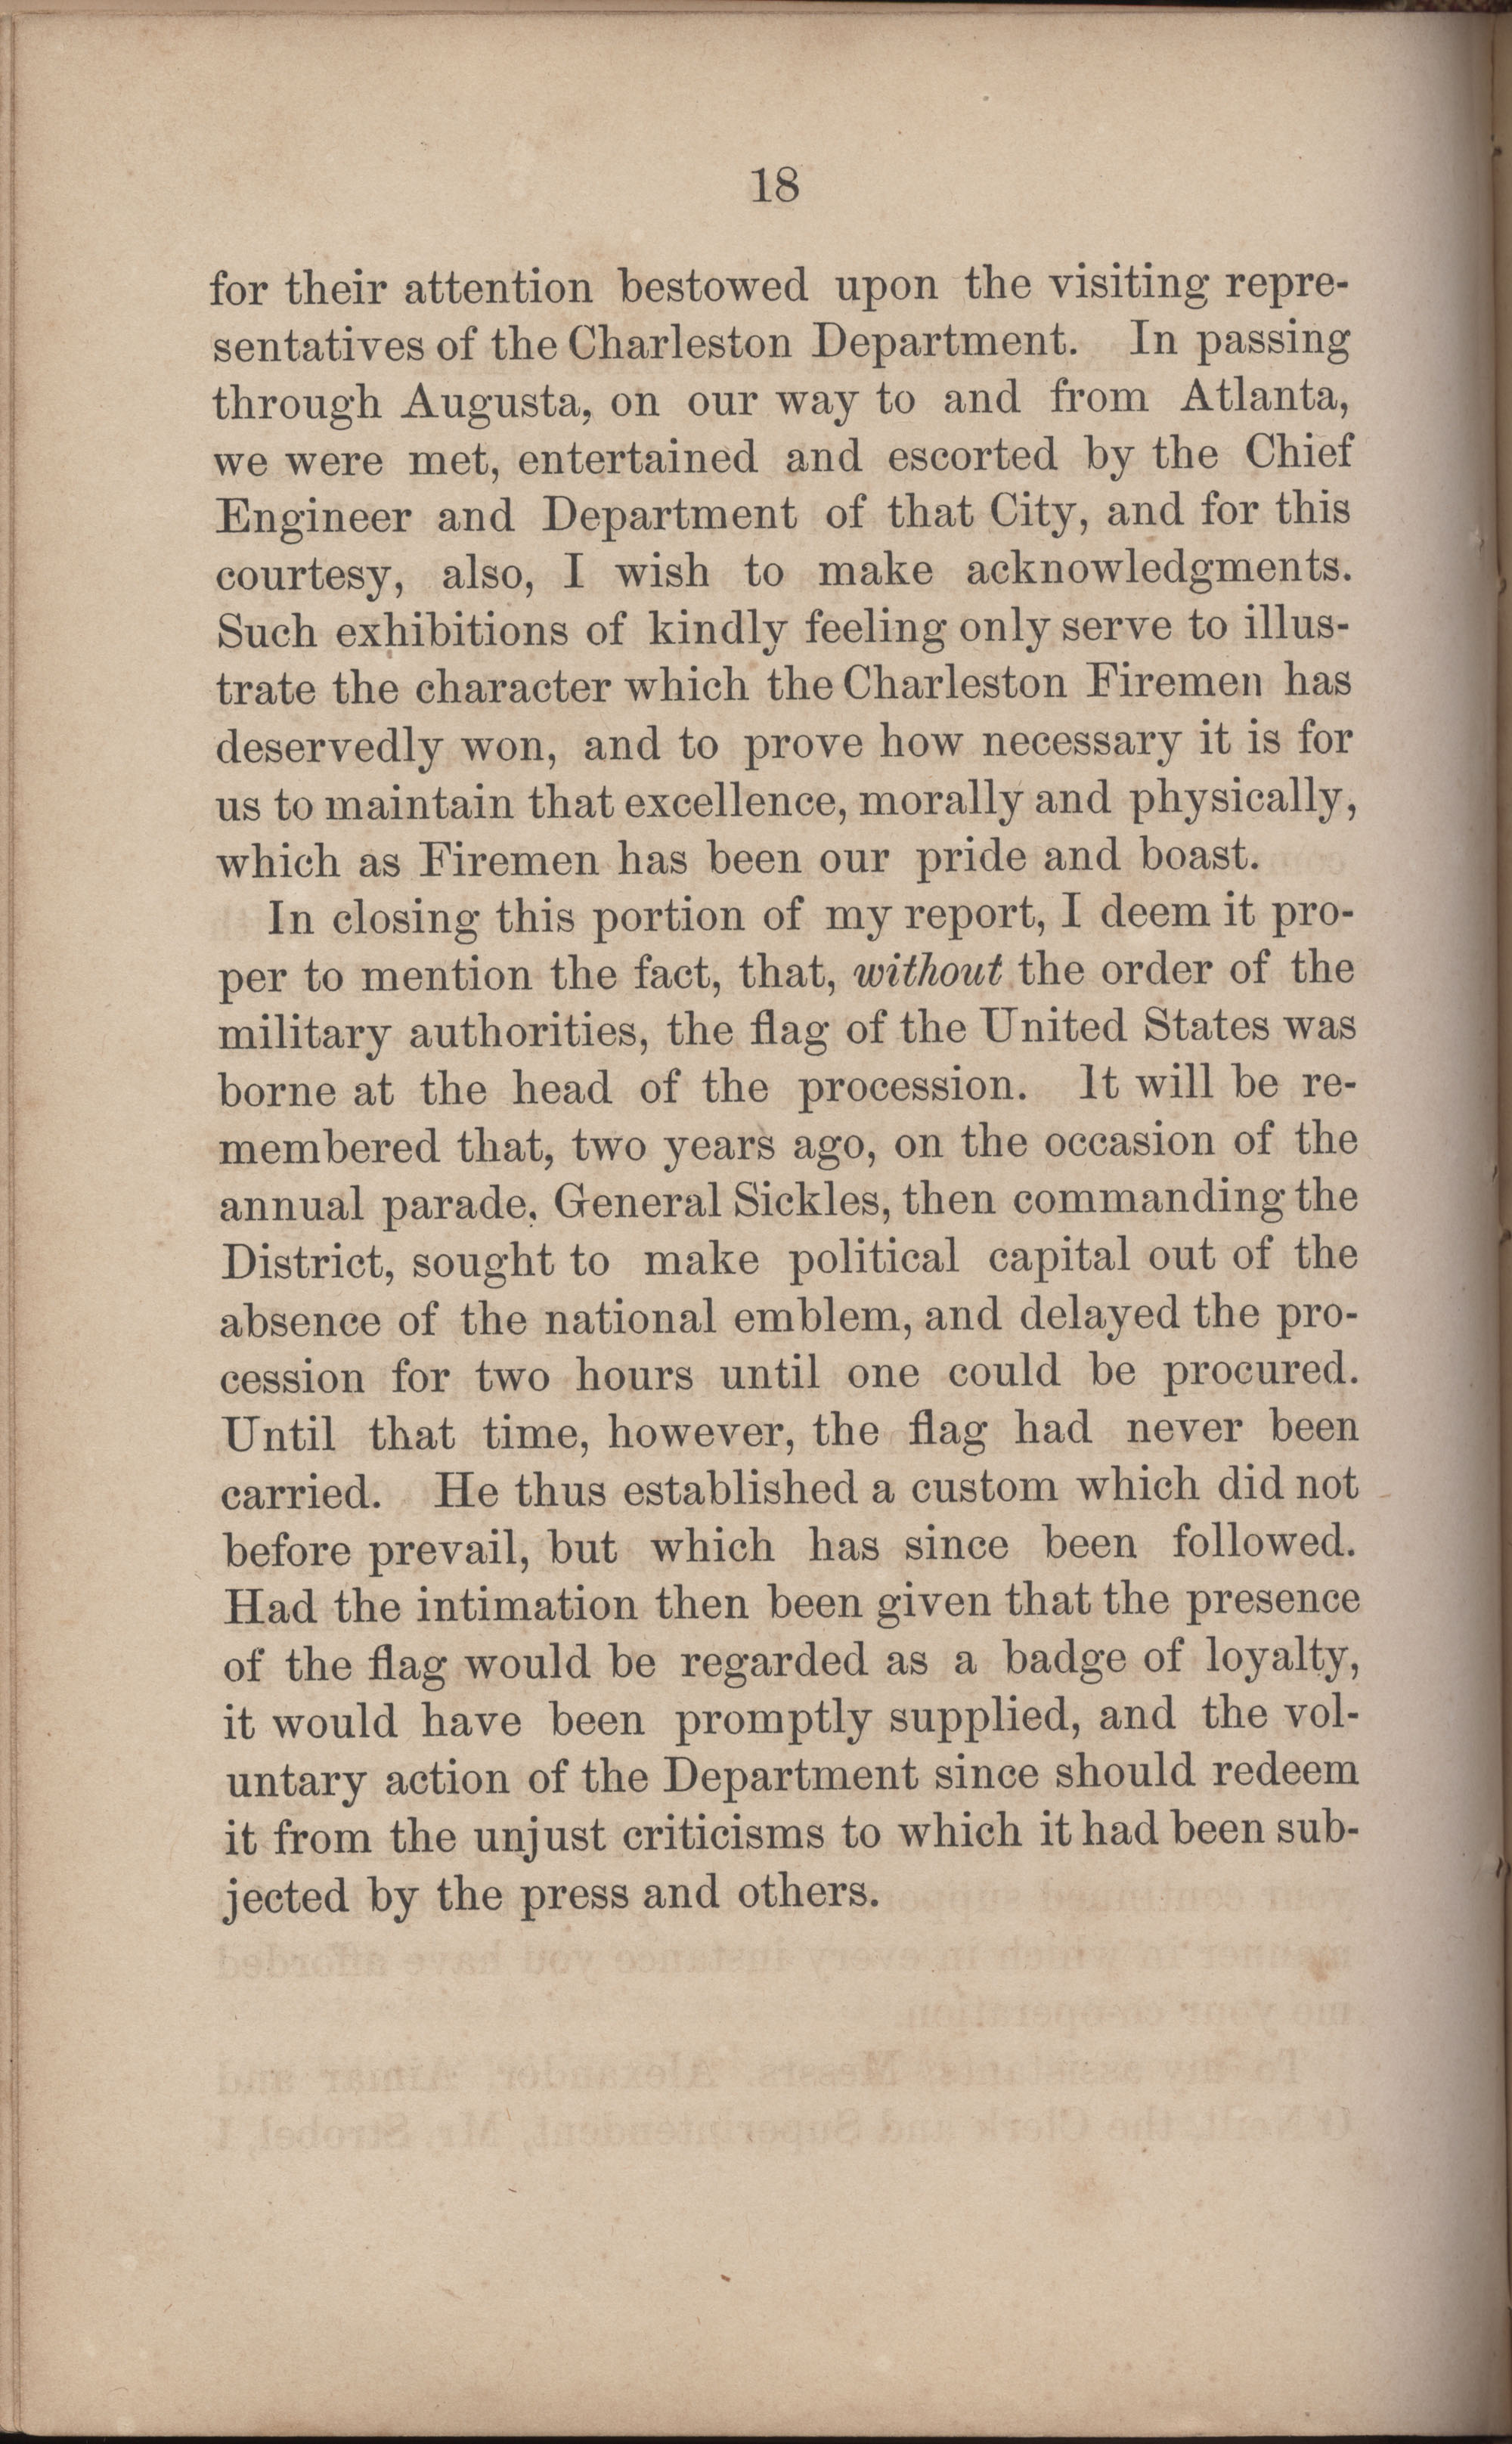 Annual Report of the Chief of the Fire Department of the City of Charleston, page 245